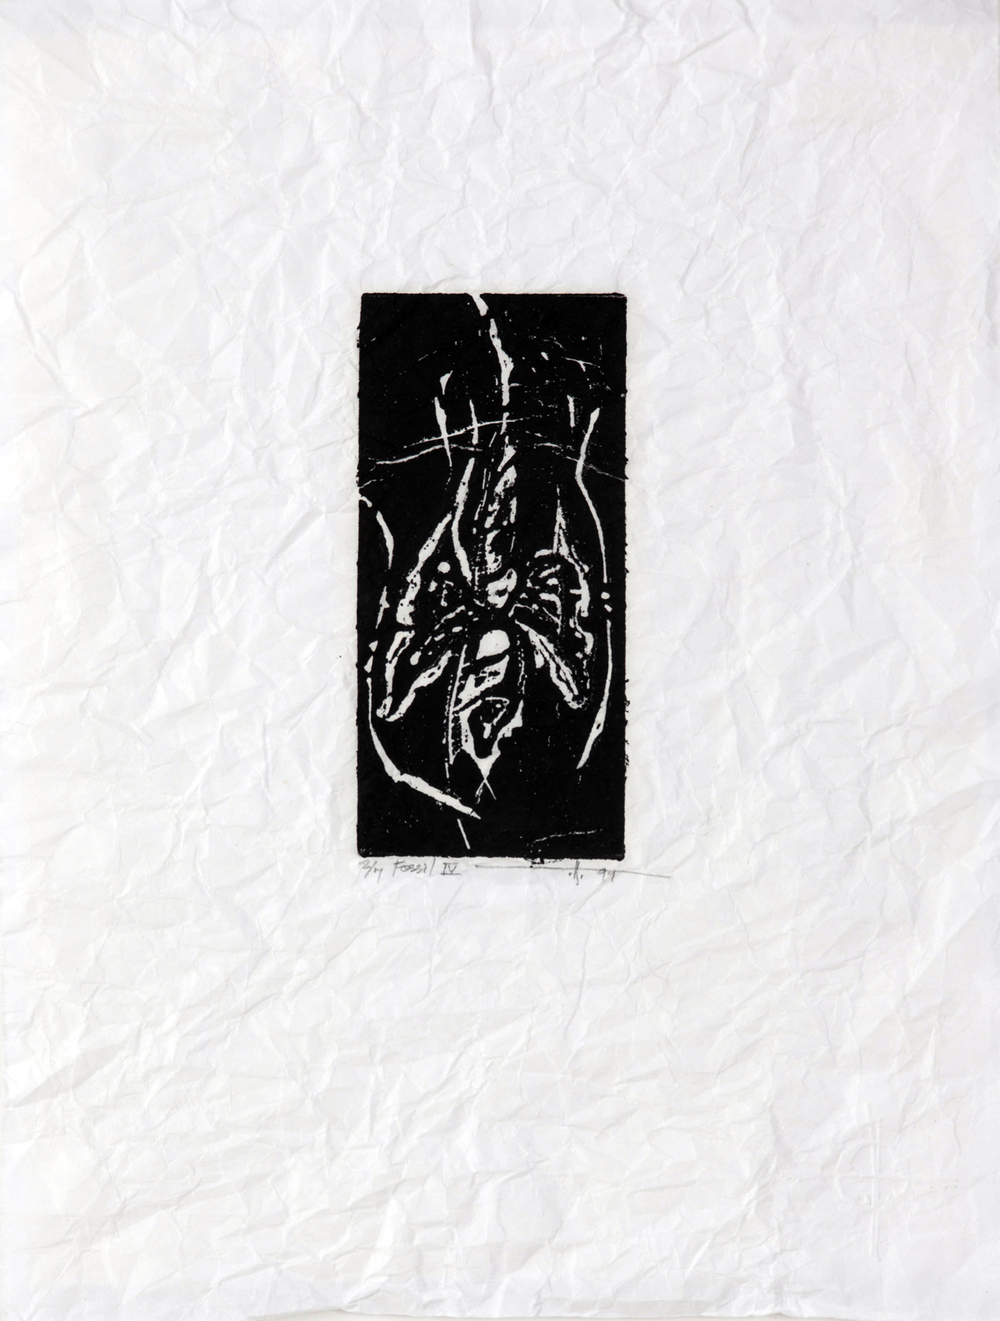 "Fossil 4,  BC  Linocut on Distressed Rice Paper 10"" x 9""  2000 / Silence Exhibition 1/7, sold out"